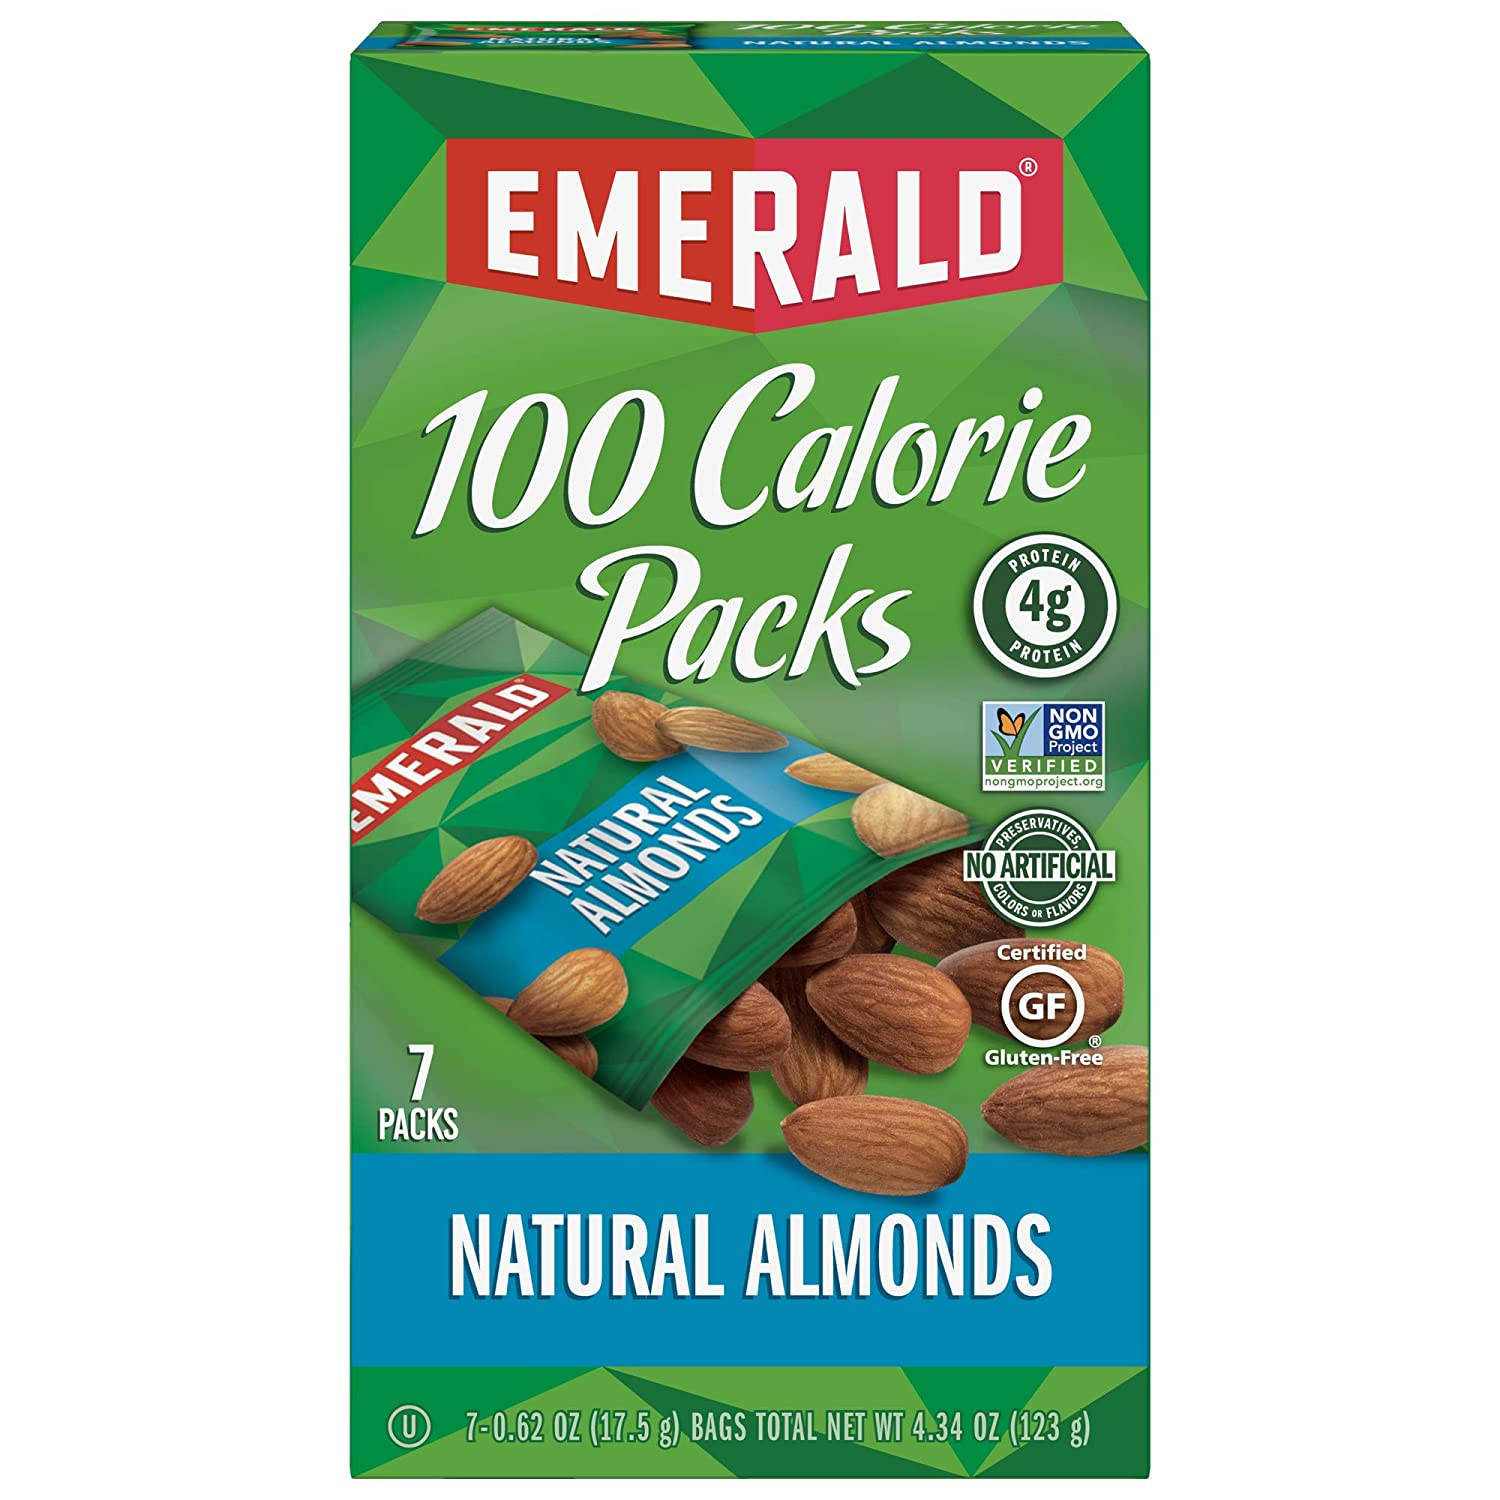 Amazon.com : Emerald Nuts, Natural Almonds 100 Calorie Packs, 7 Count Boxes  (Pack of 12) : Snack Almonds : Grocery & Gourmet Food